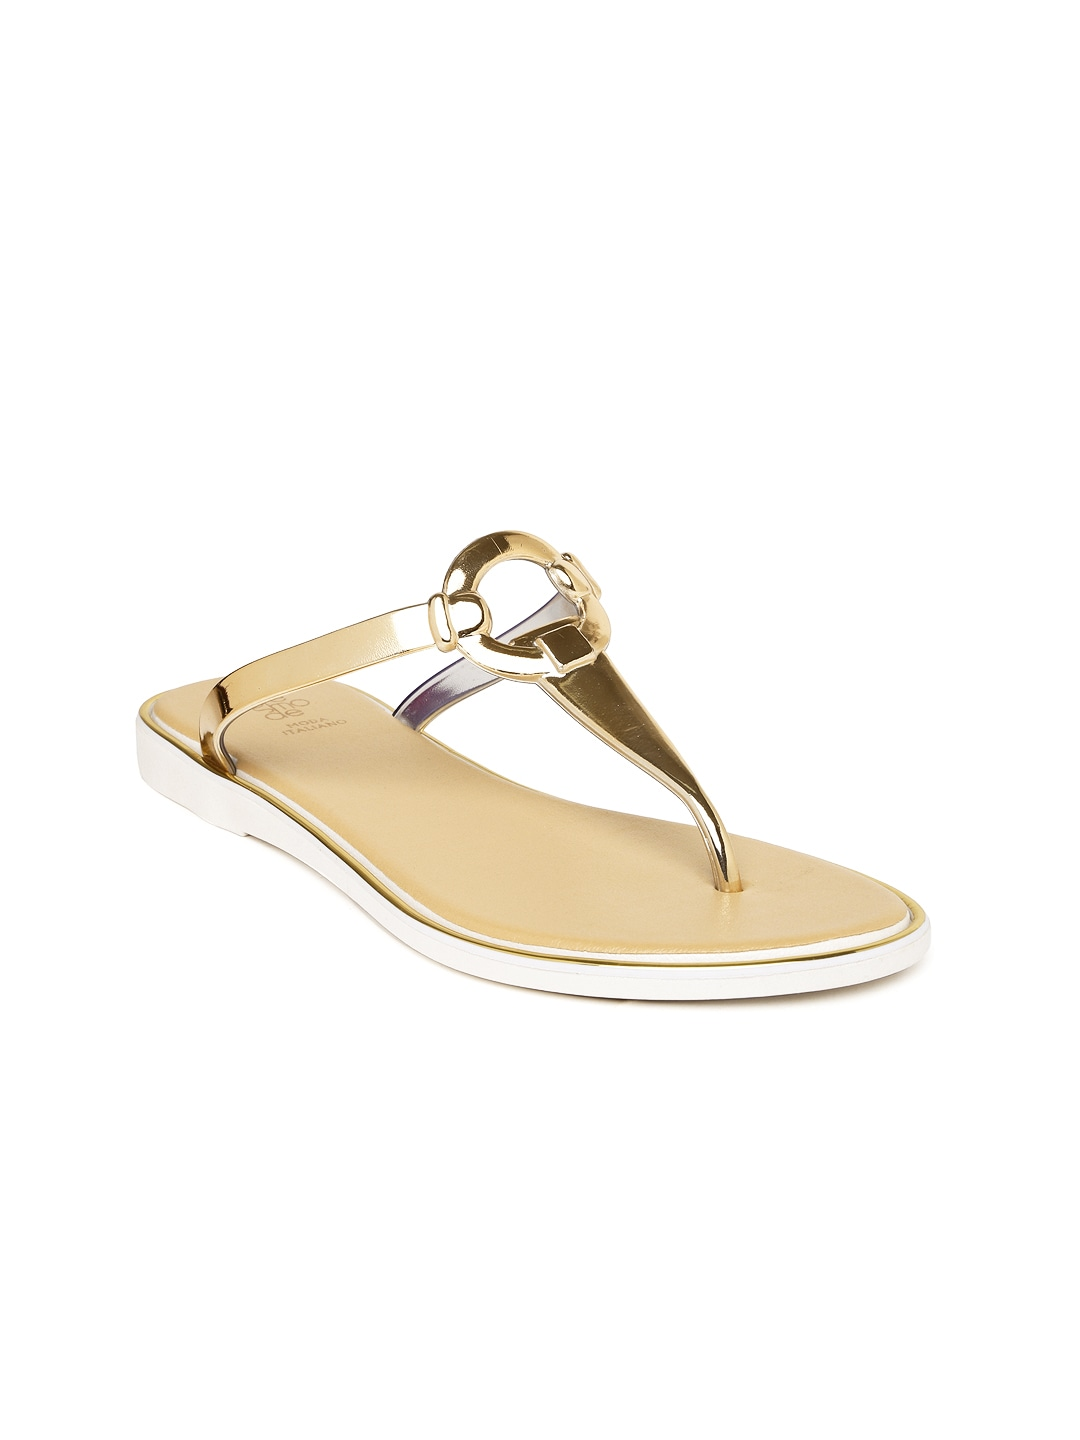 Tresmode Women Gold-Toned T-Strap Flats image